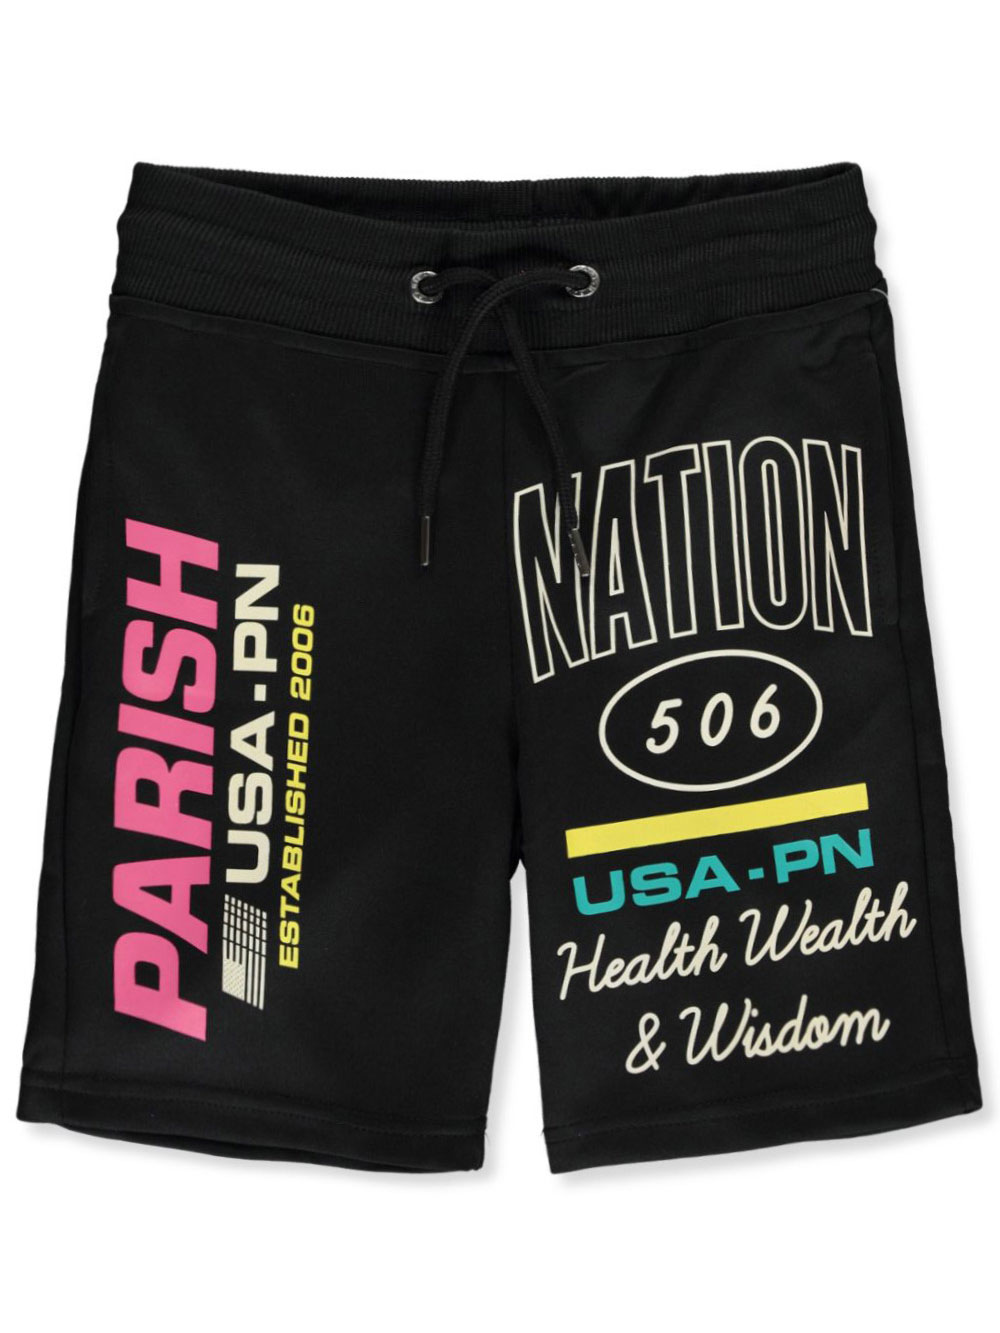 Boys' Graphic Performance Shorts